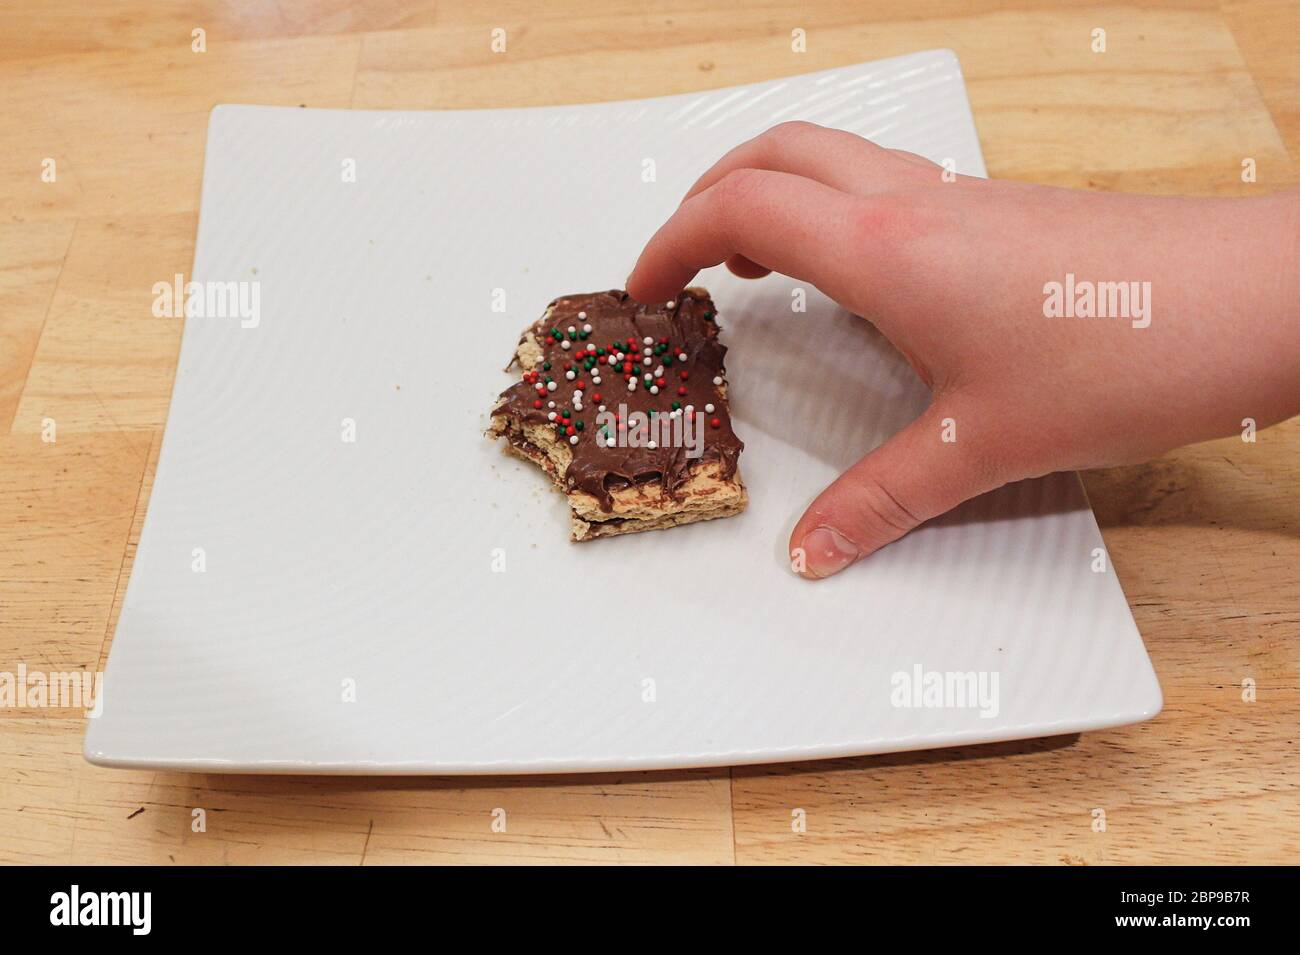 A childs hand grabing a treat off a white plate. Stock Photo